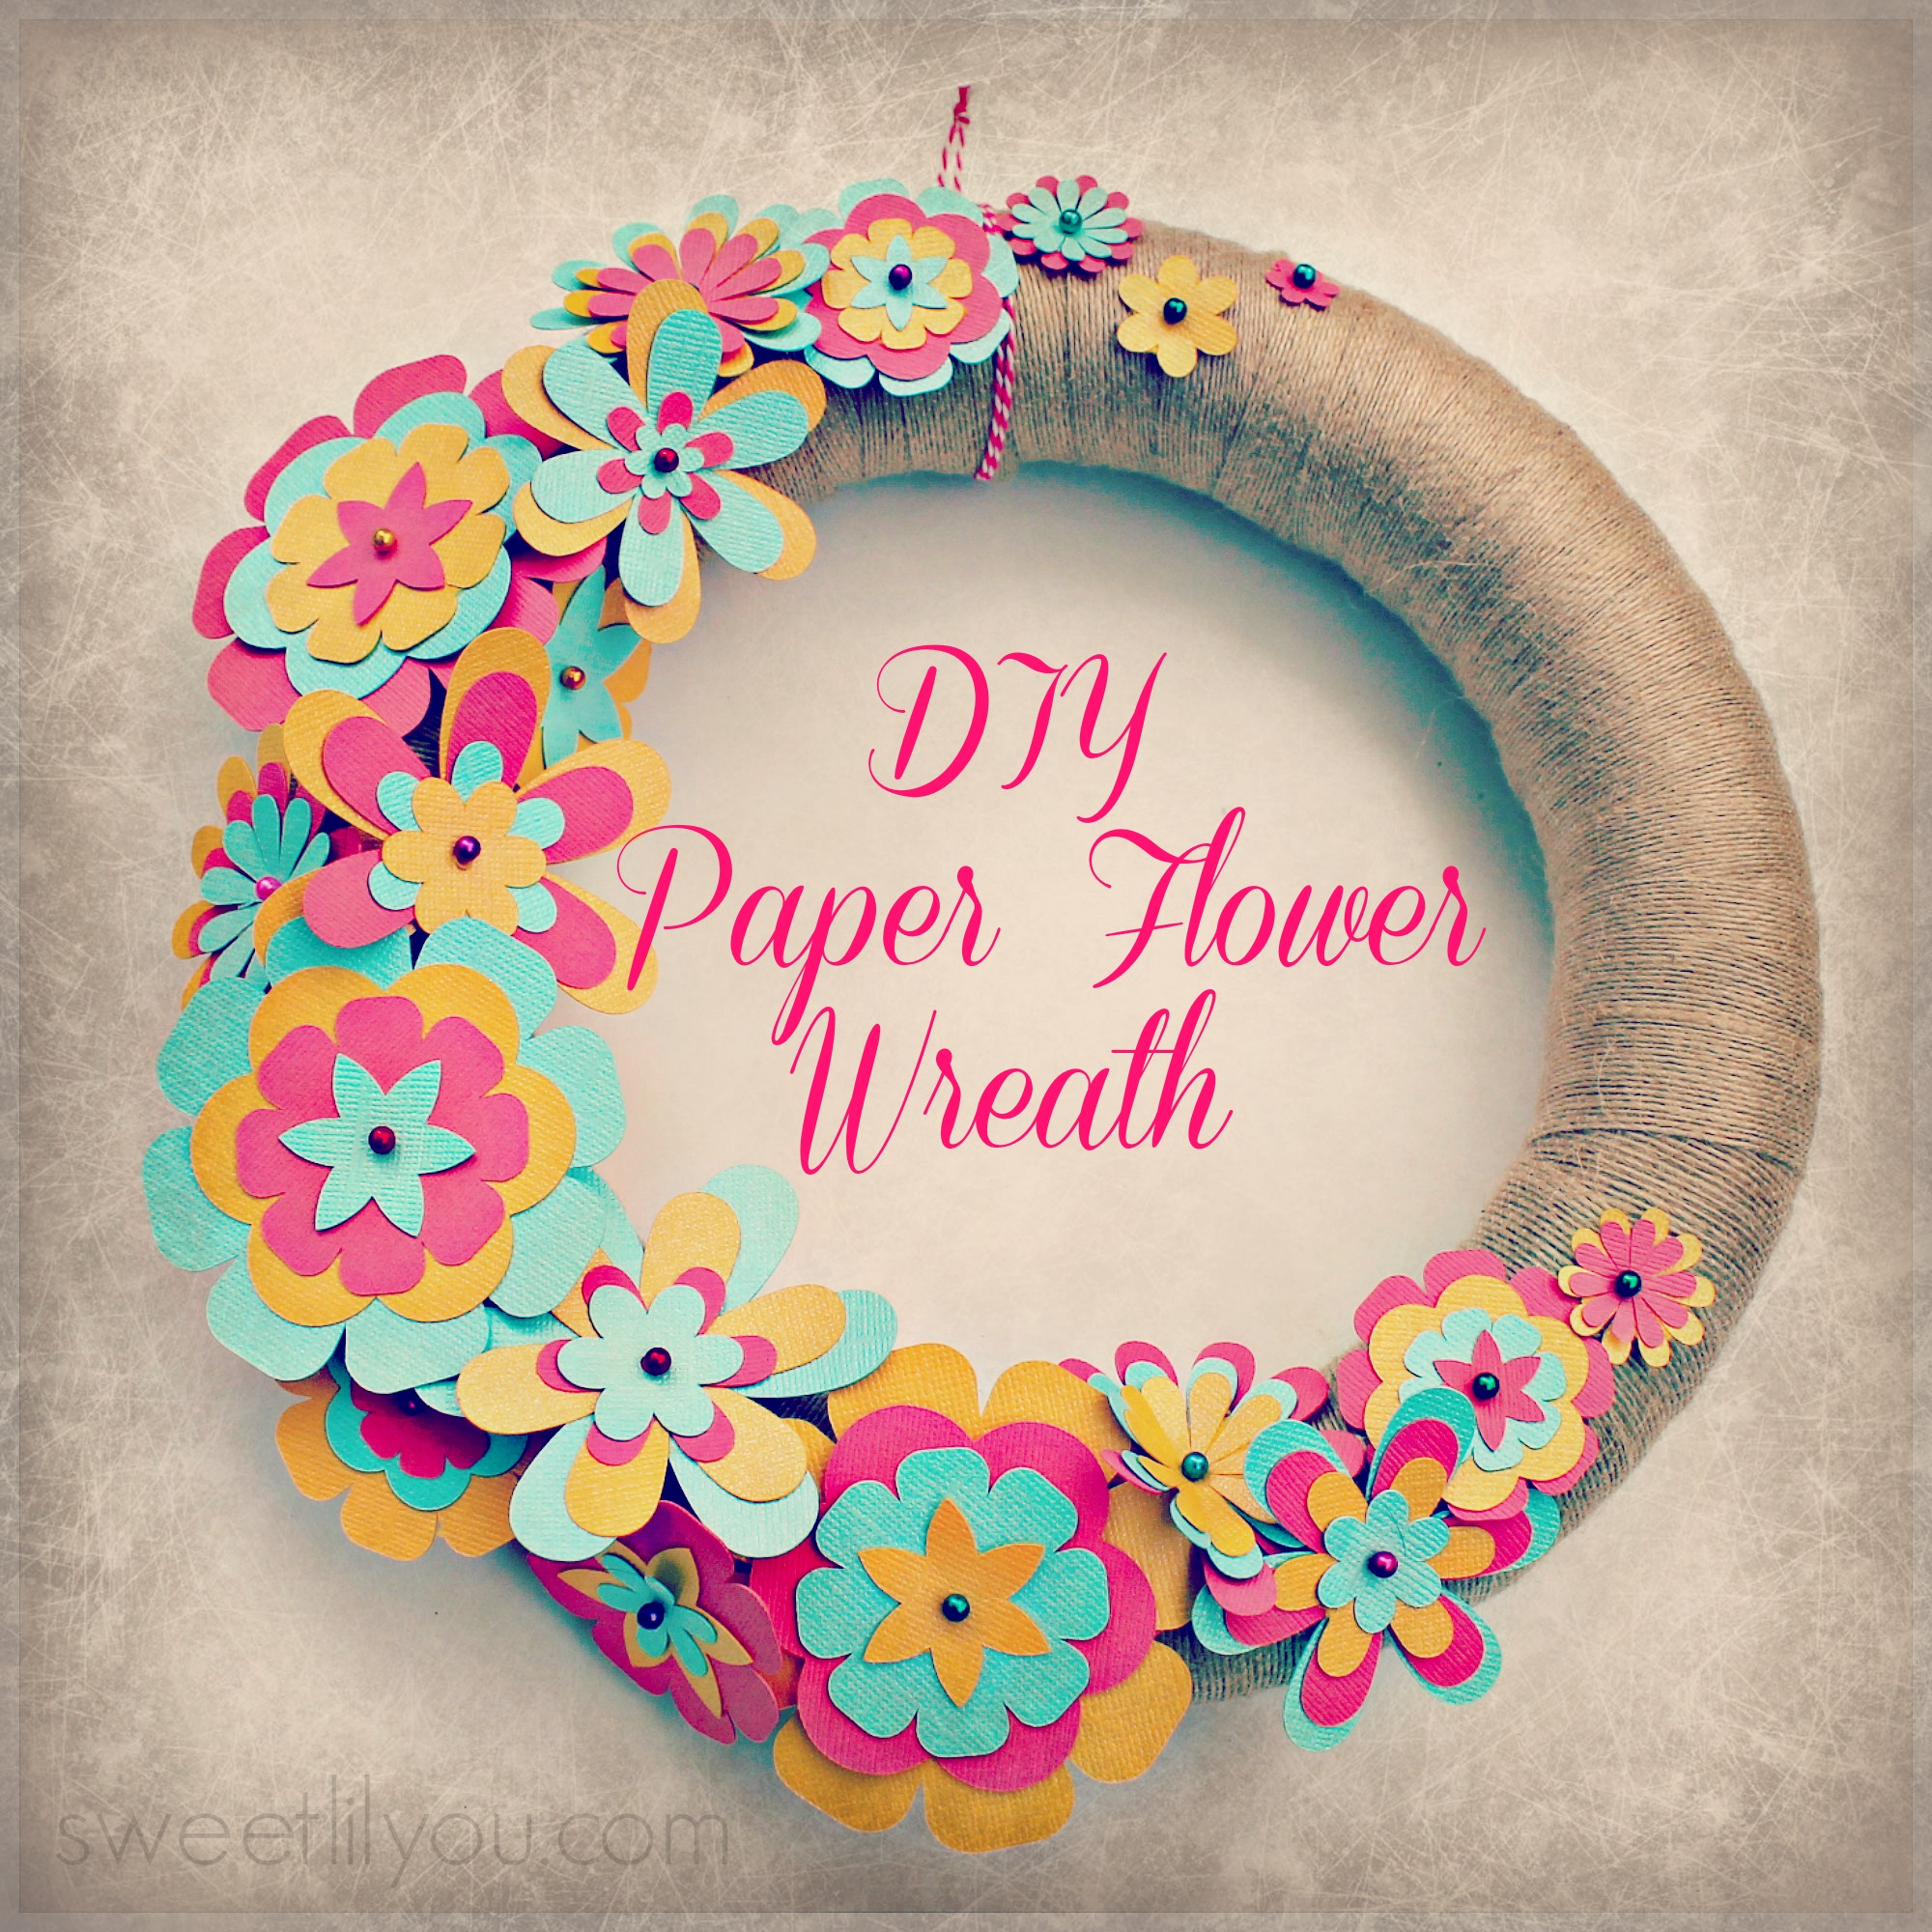 Easy diy paper flower wreath sweet lil you for Art and craft with paper easy